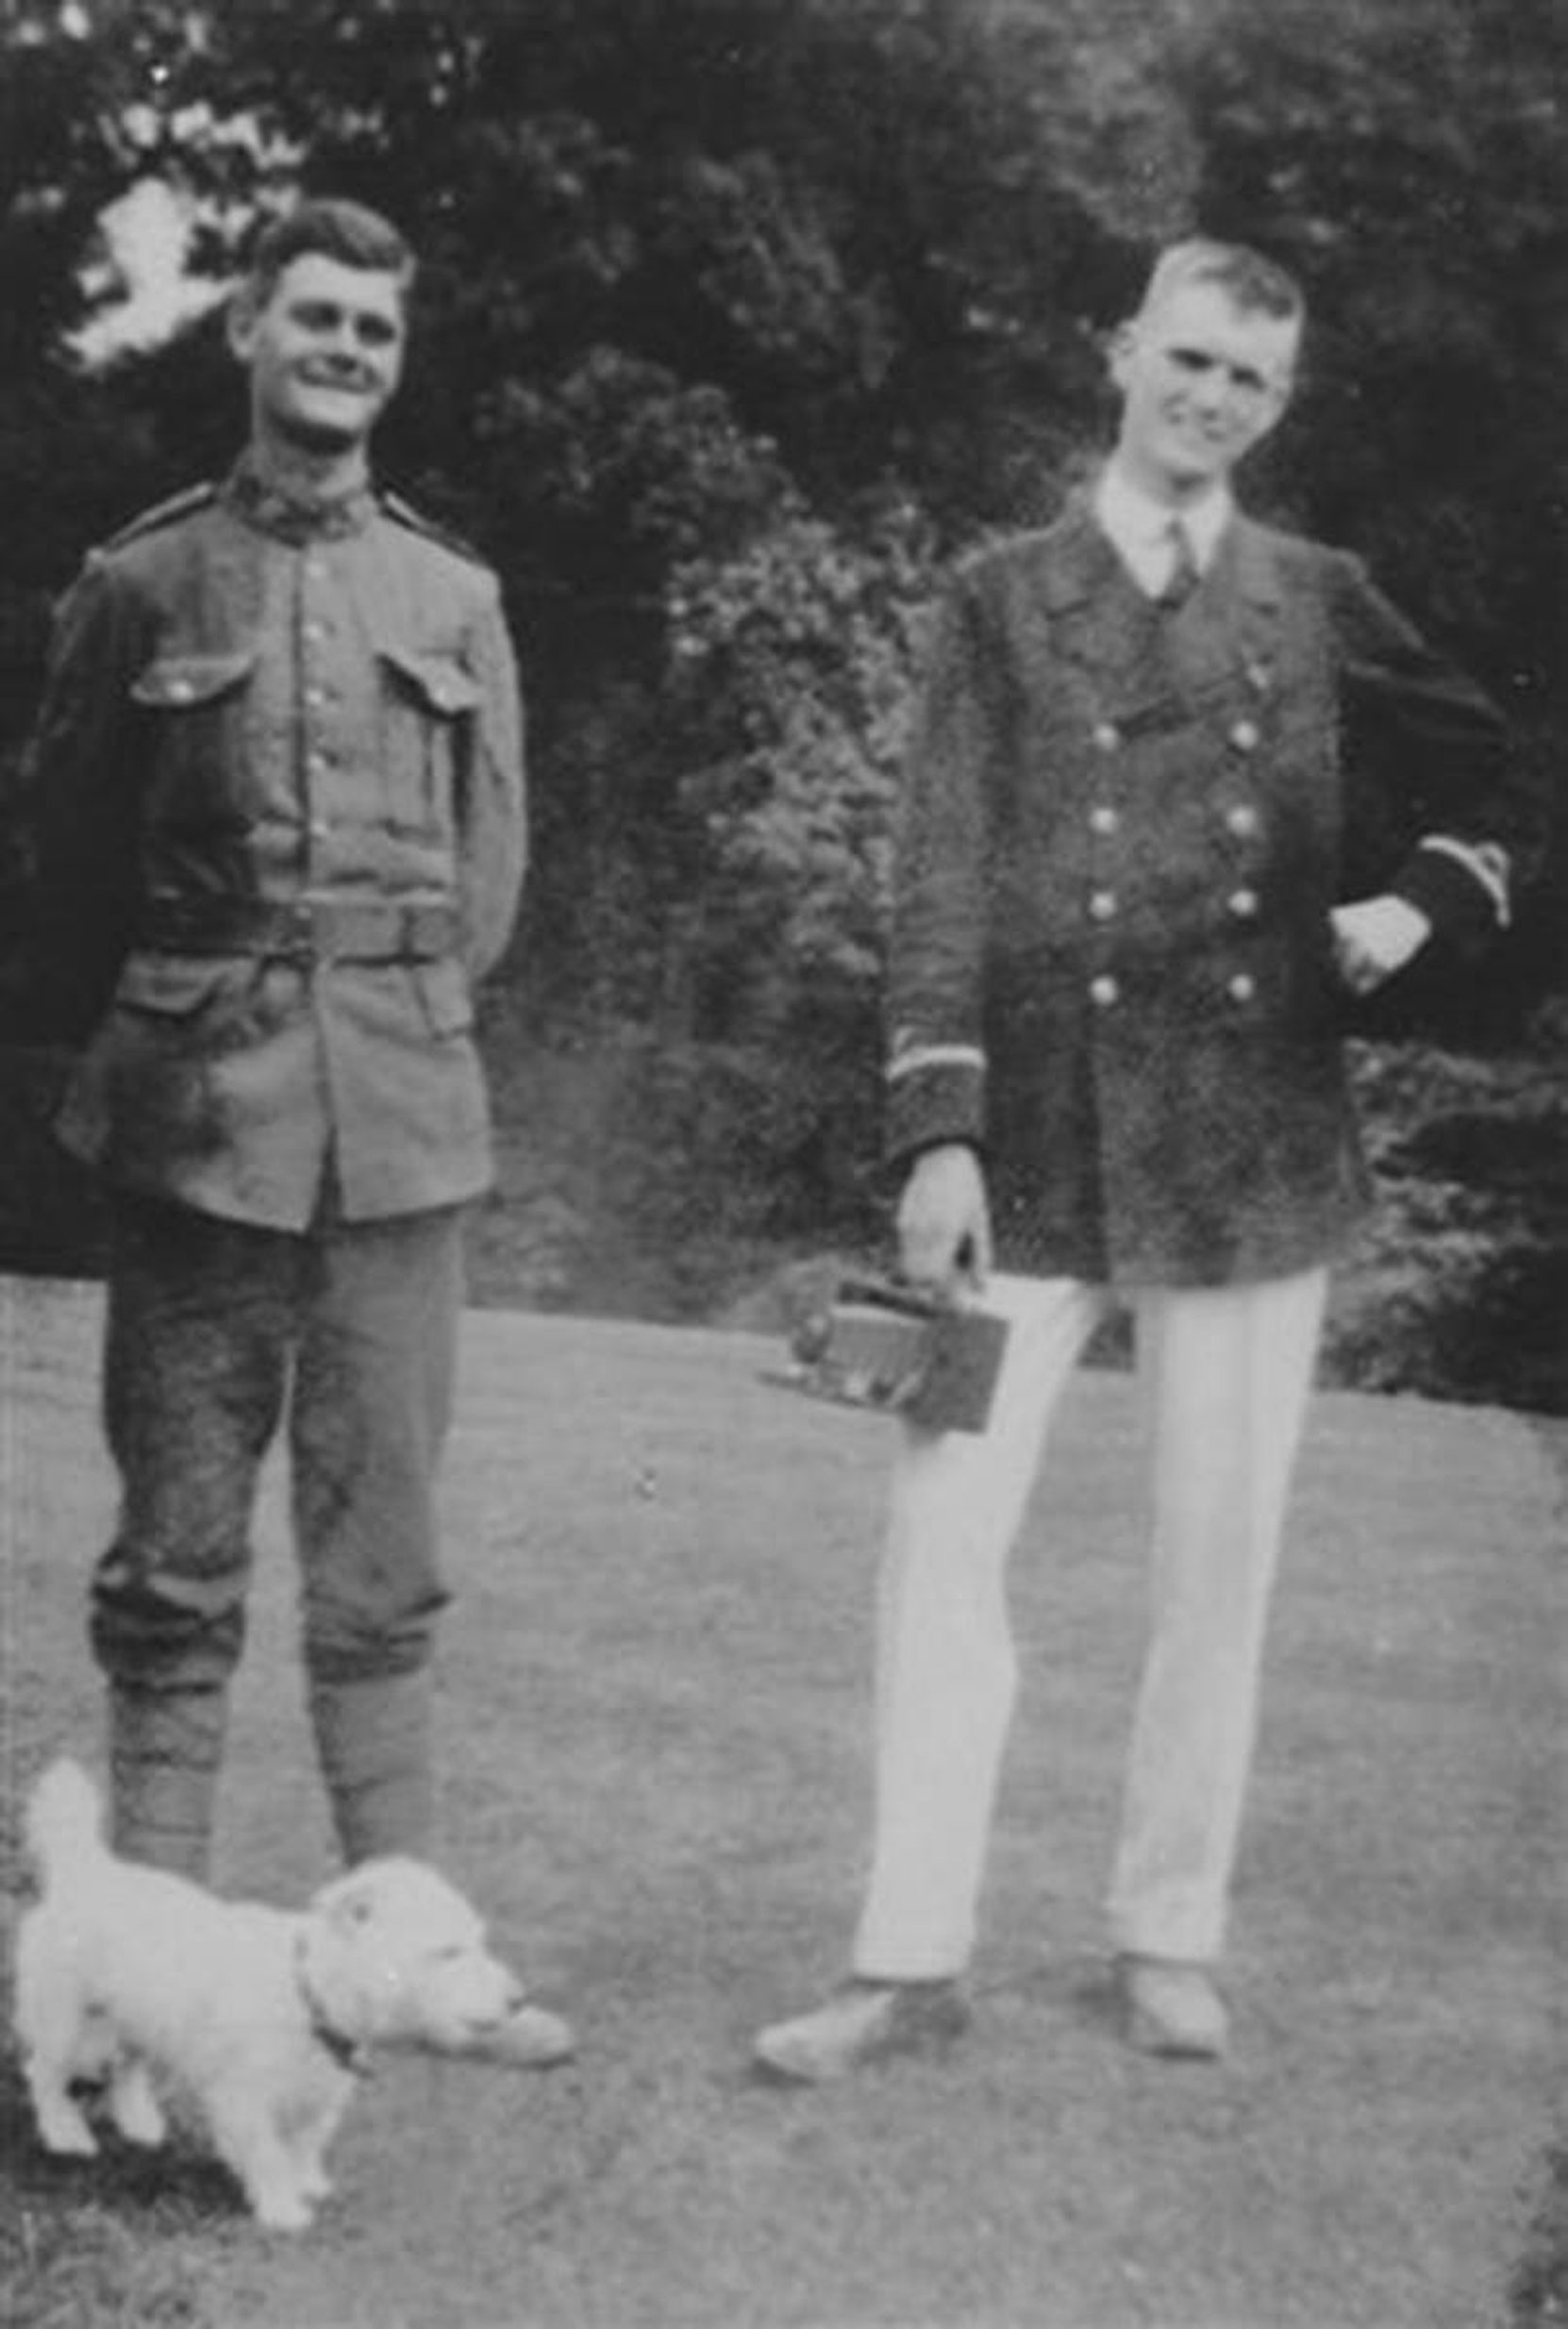 Hamish Kinnear Maitland-Dougall (left) and William McKinstry Maitland-Dougall (right), circa 1915. This photo w was reproduced in the Cowichan Valley Citizen on 11 November 2019.